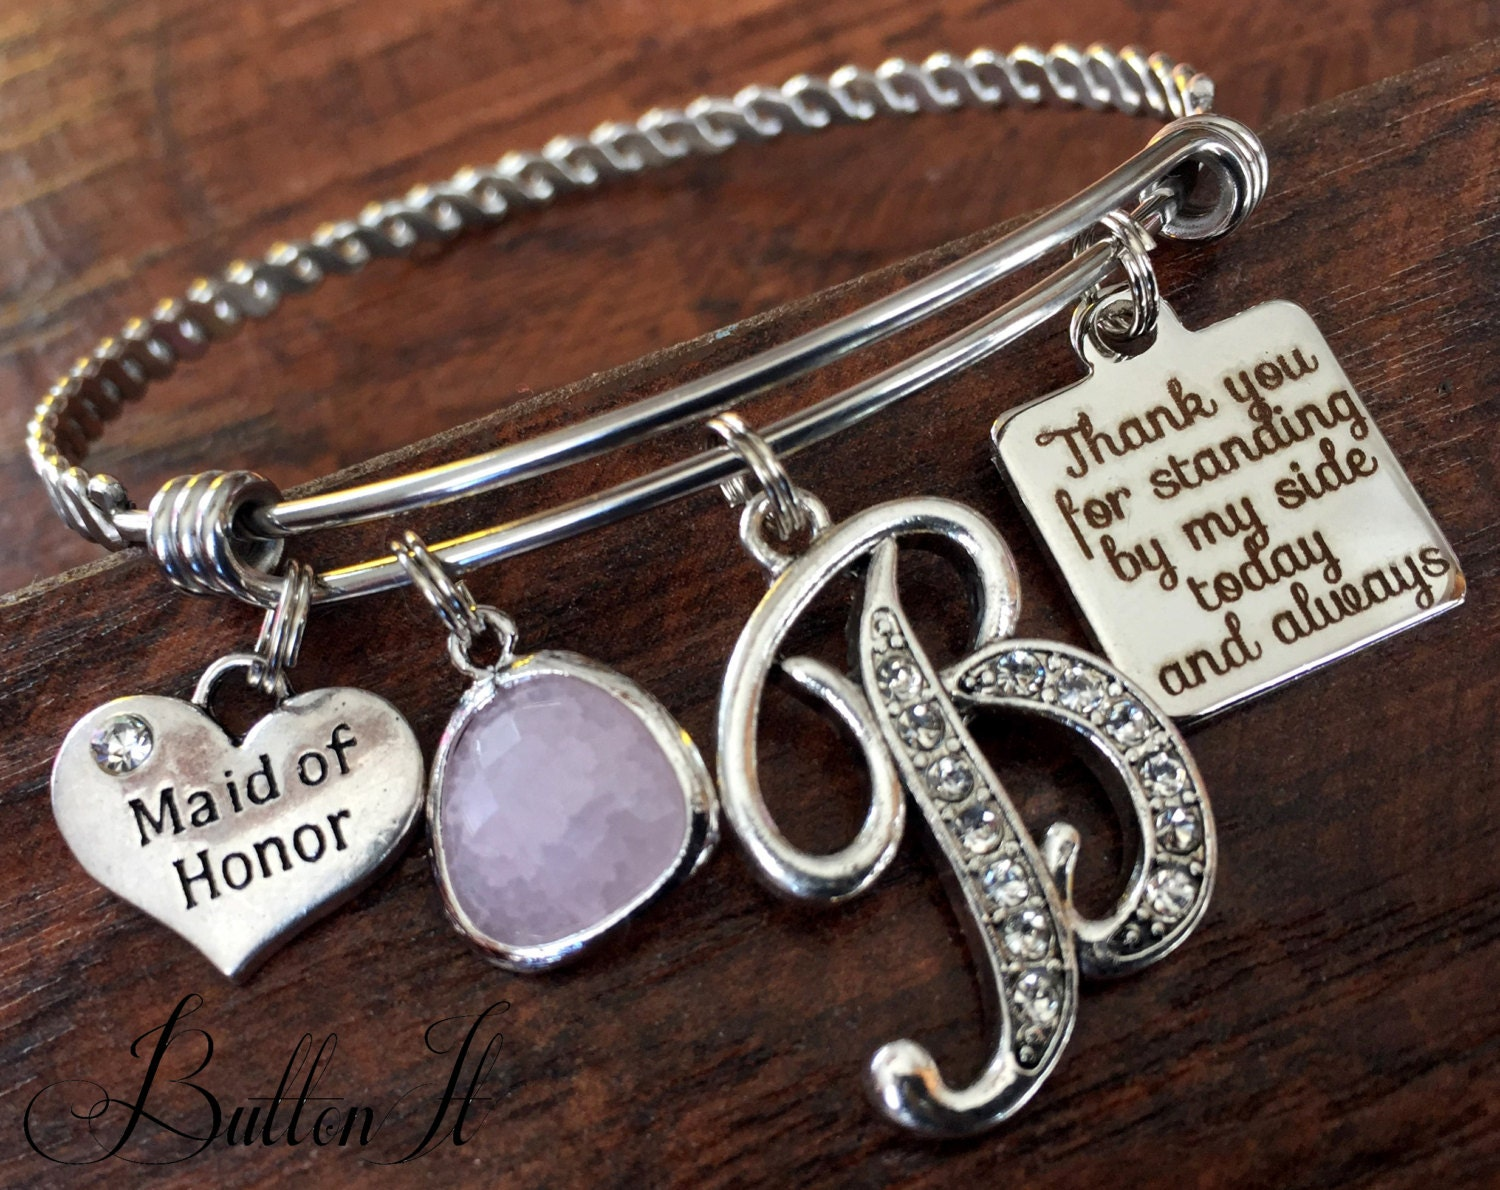 Maid Of Honor Gifts From Bride: Maid Of Honor Gift Matron Of Honor BRIDESMAID Gift